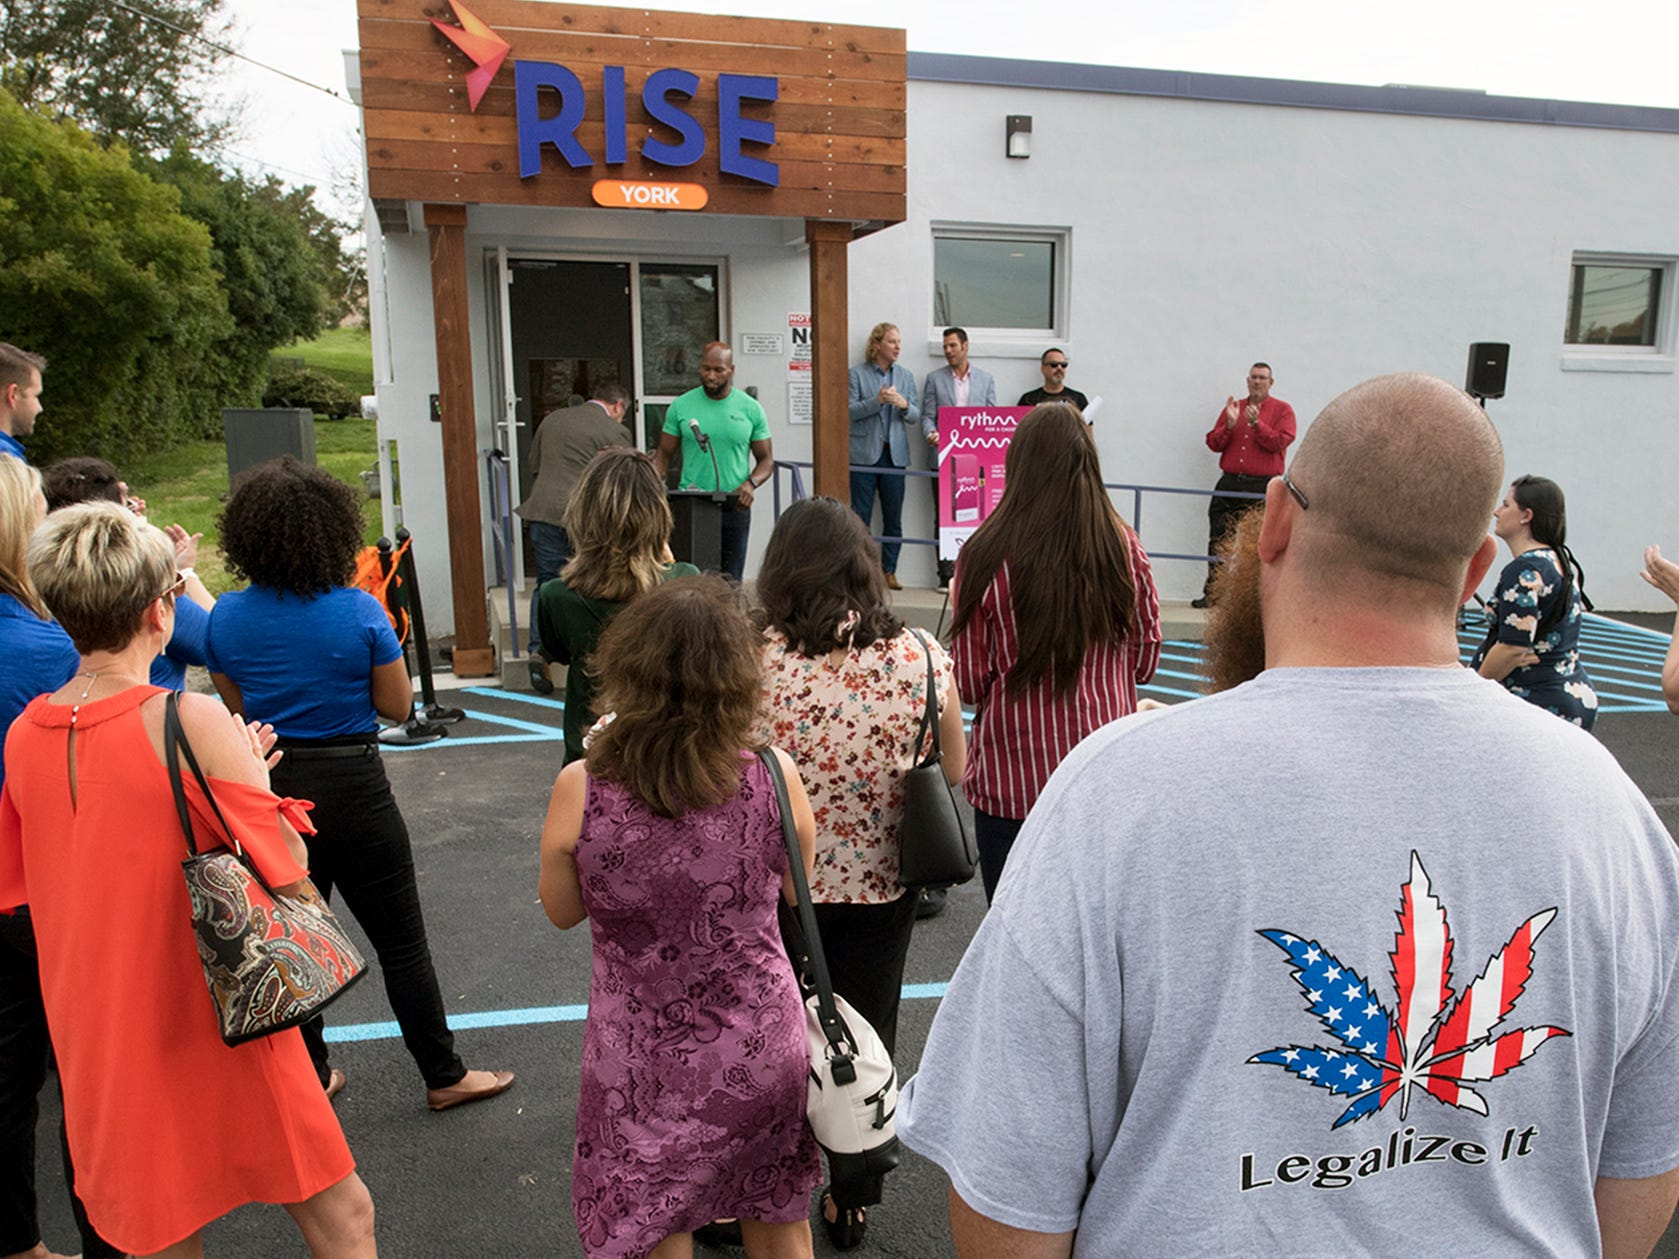 A crowd listens to speaker before a ribbon cutting in front of the Rise medical marijuana dispensary in West Manchester Township Tuesday October 2, 2018.